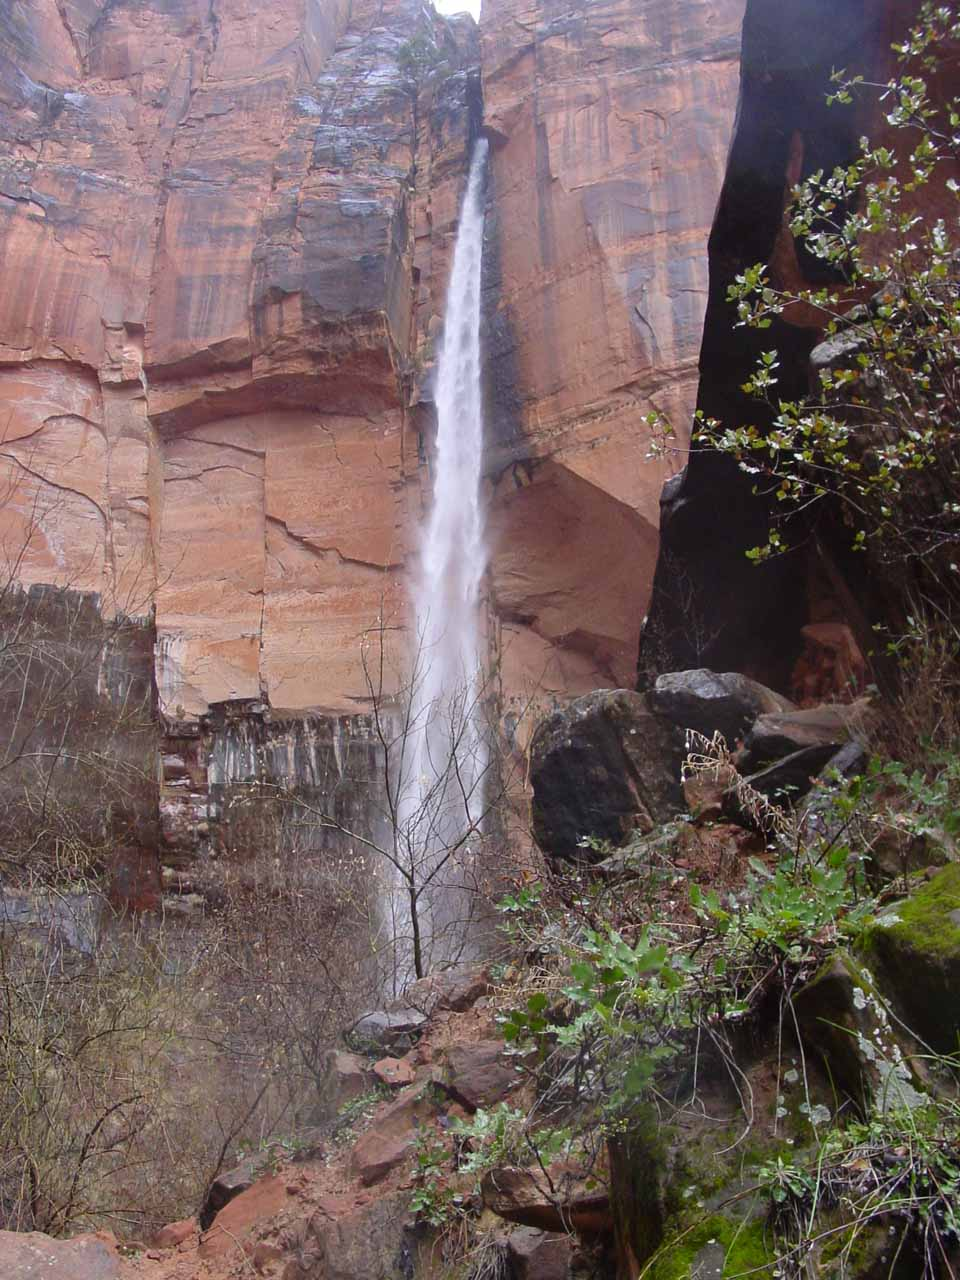 Closeup view of the Upper Emerald Pool waterfall